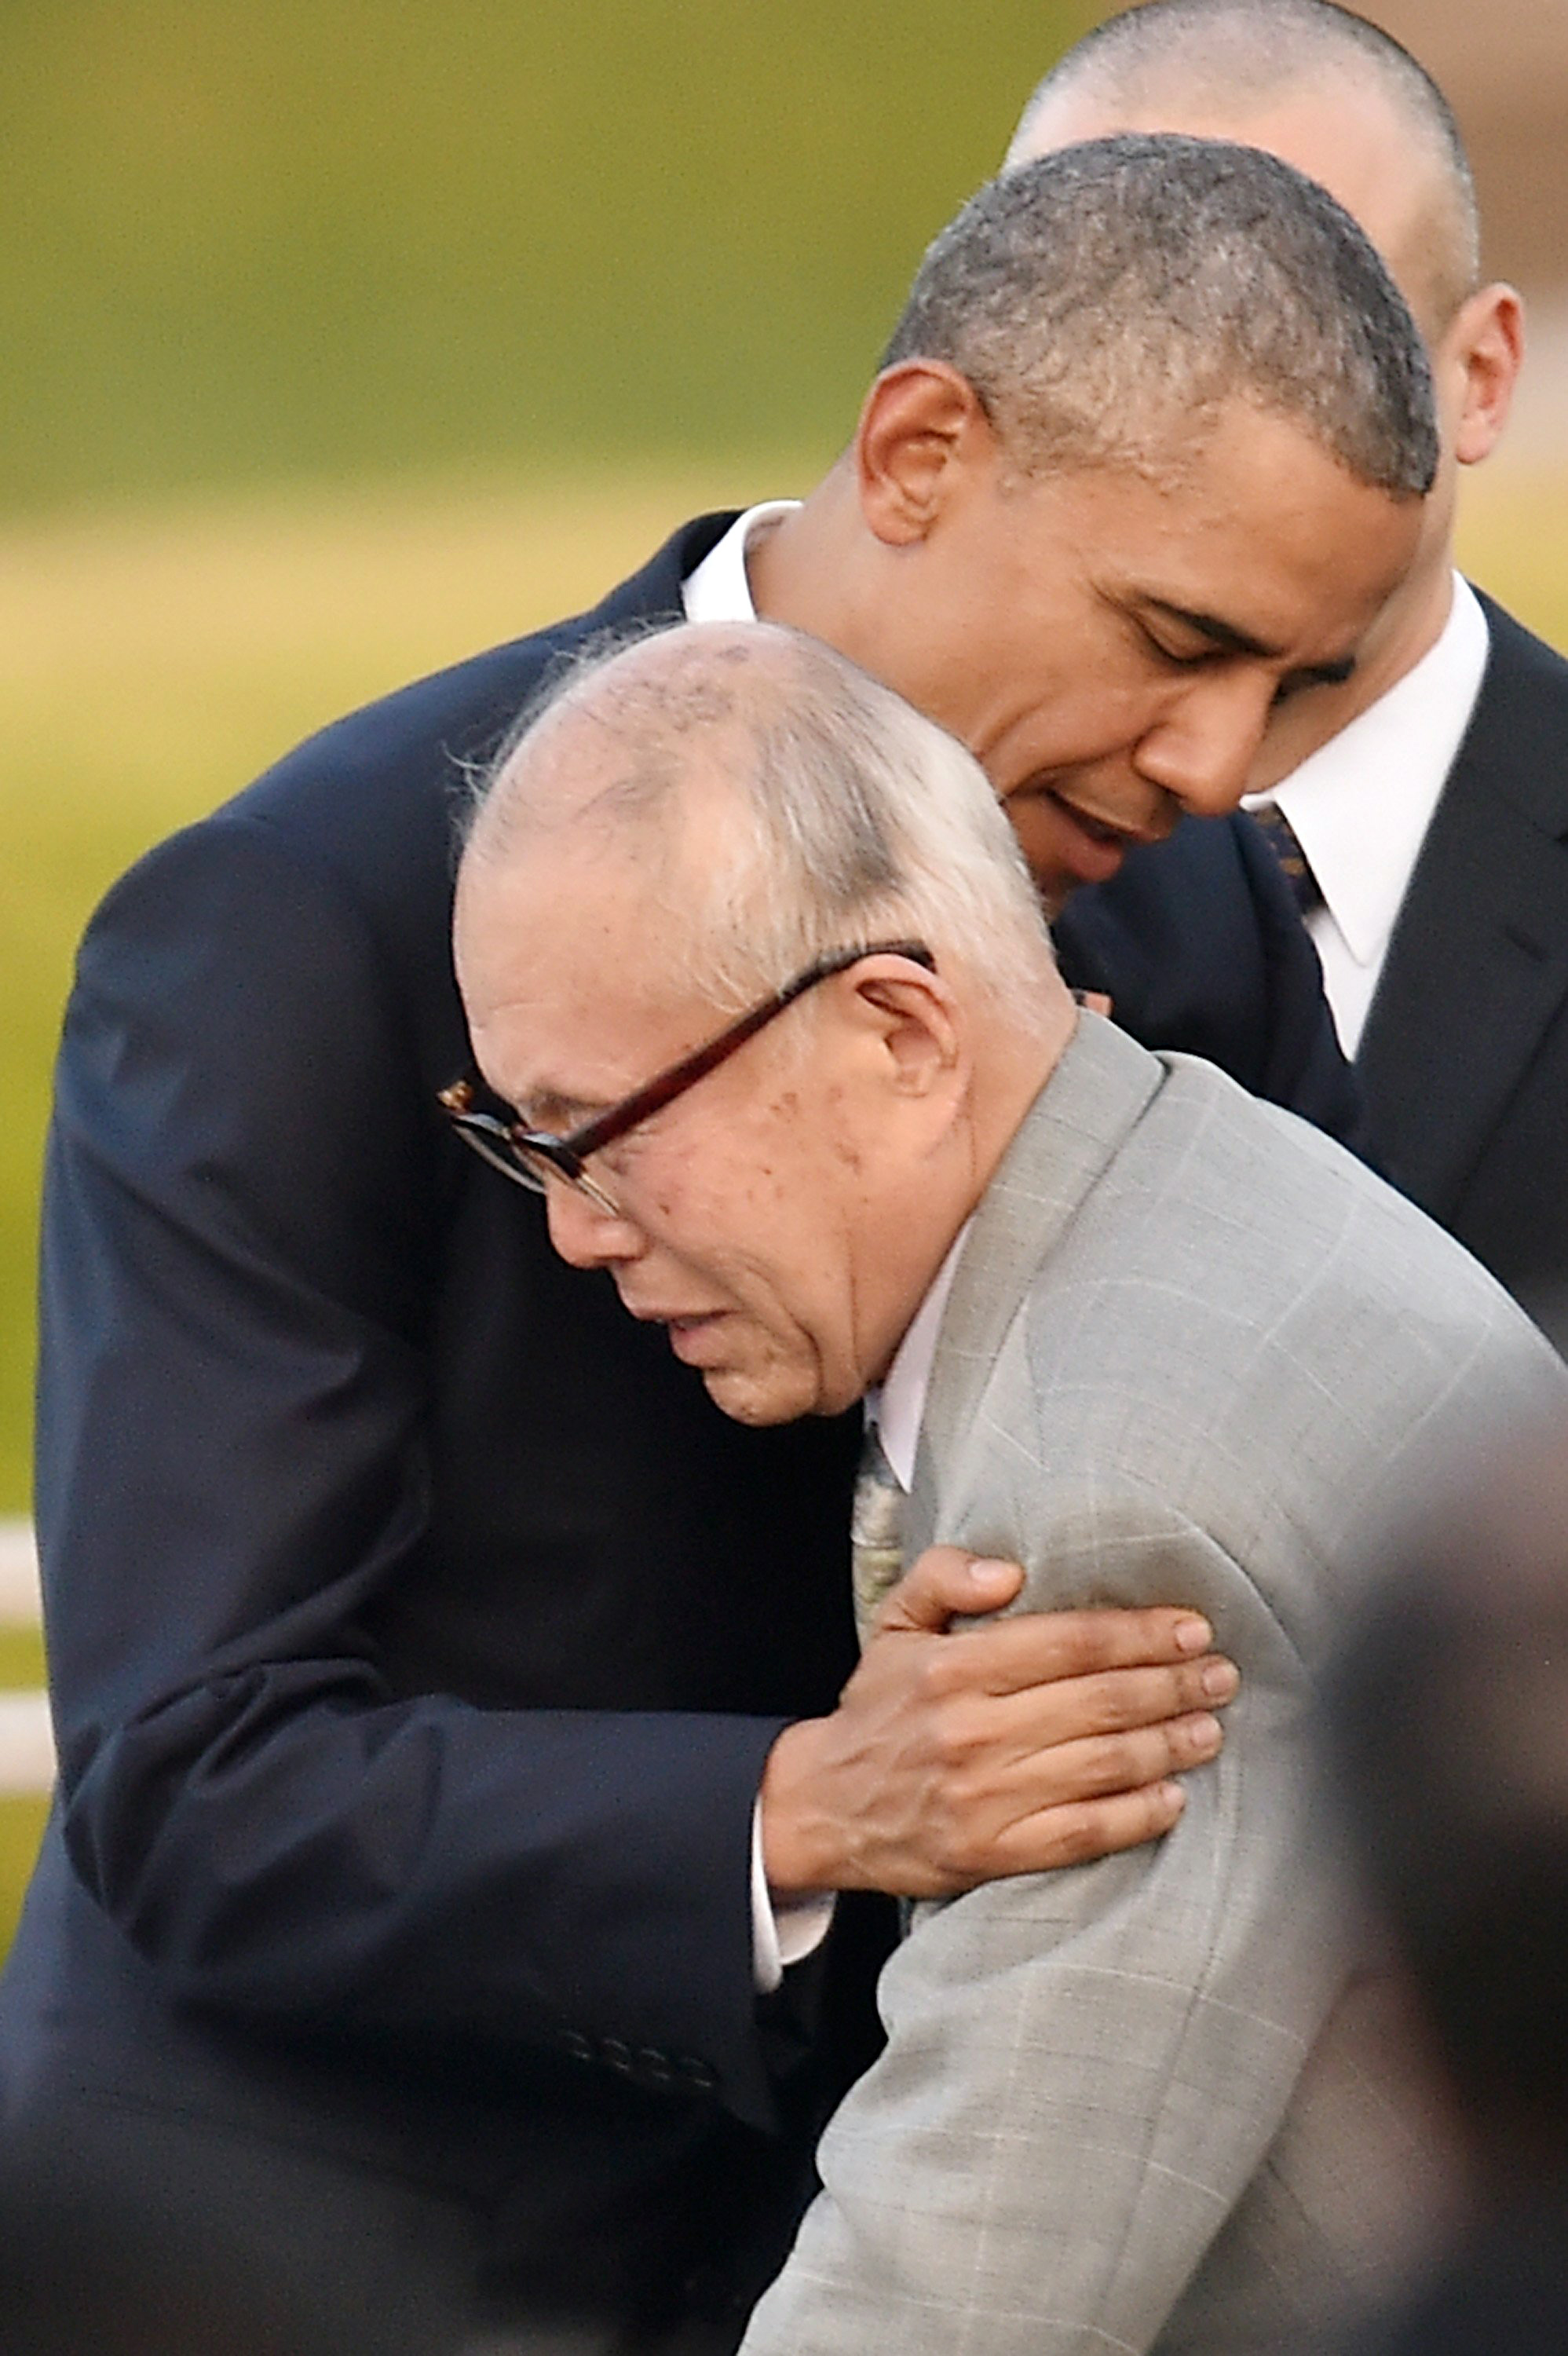 U.S. President Barack Obama embraces atomic bomb survivor Shigeaki Mori during his visit to the Hiroshima Peace Memorial Park on May 27, 2016 in Hiroshima, Japan.